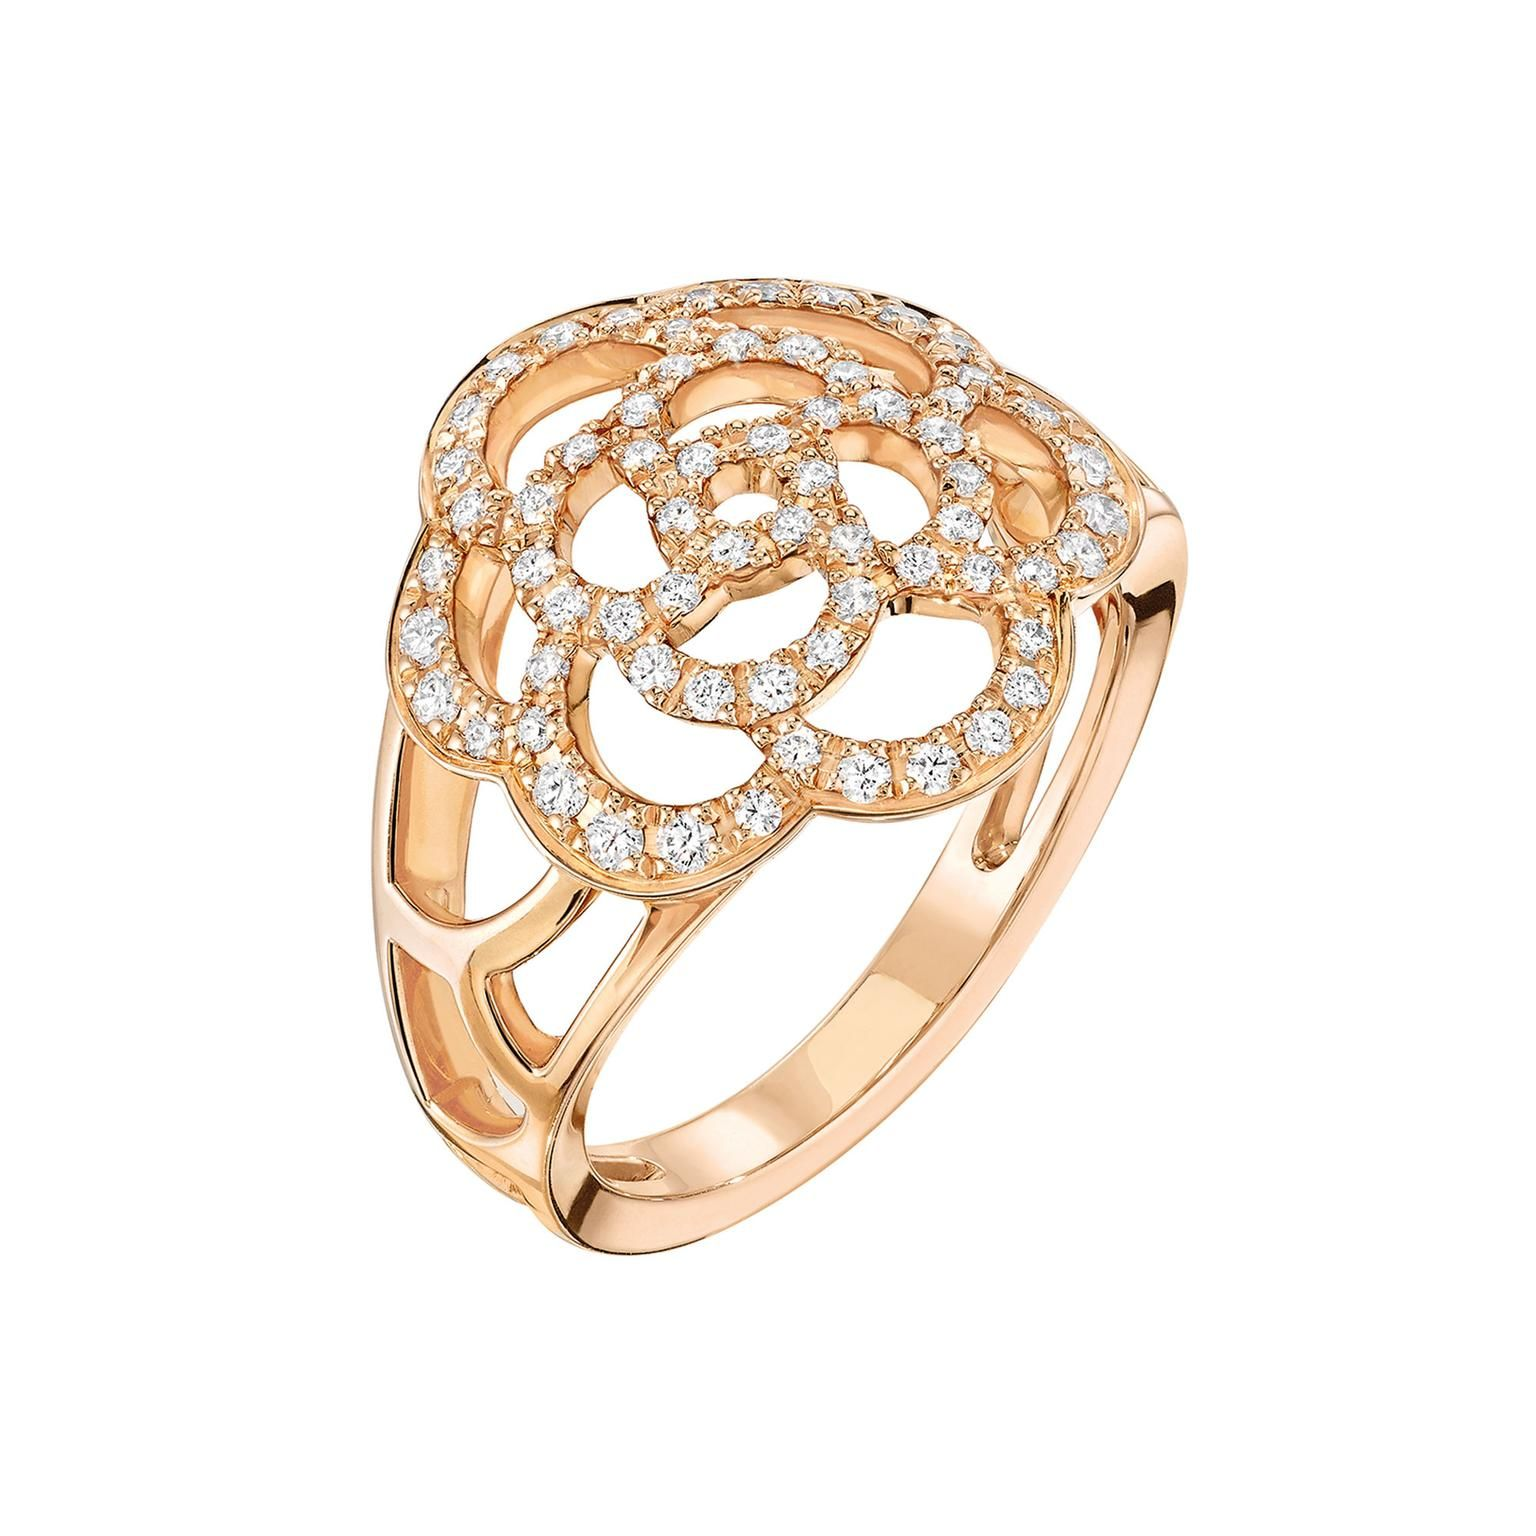 Chanel Camlia ring in rose gold and diamonds JEWELRY Chanel